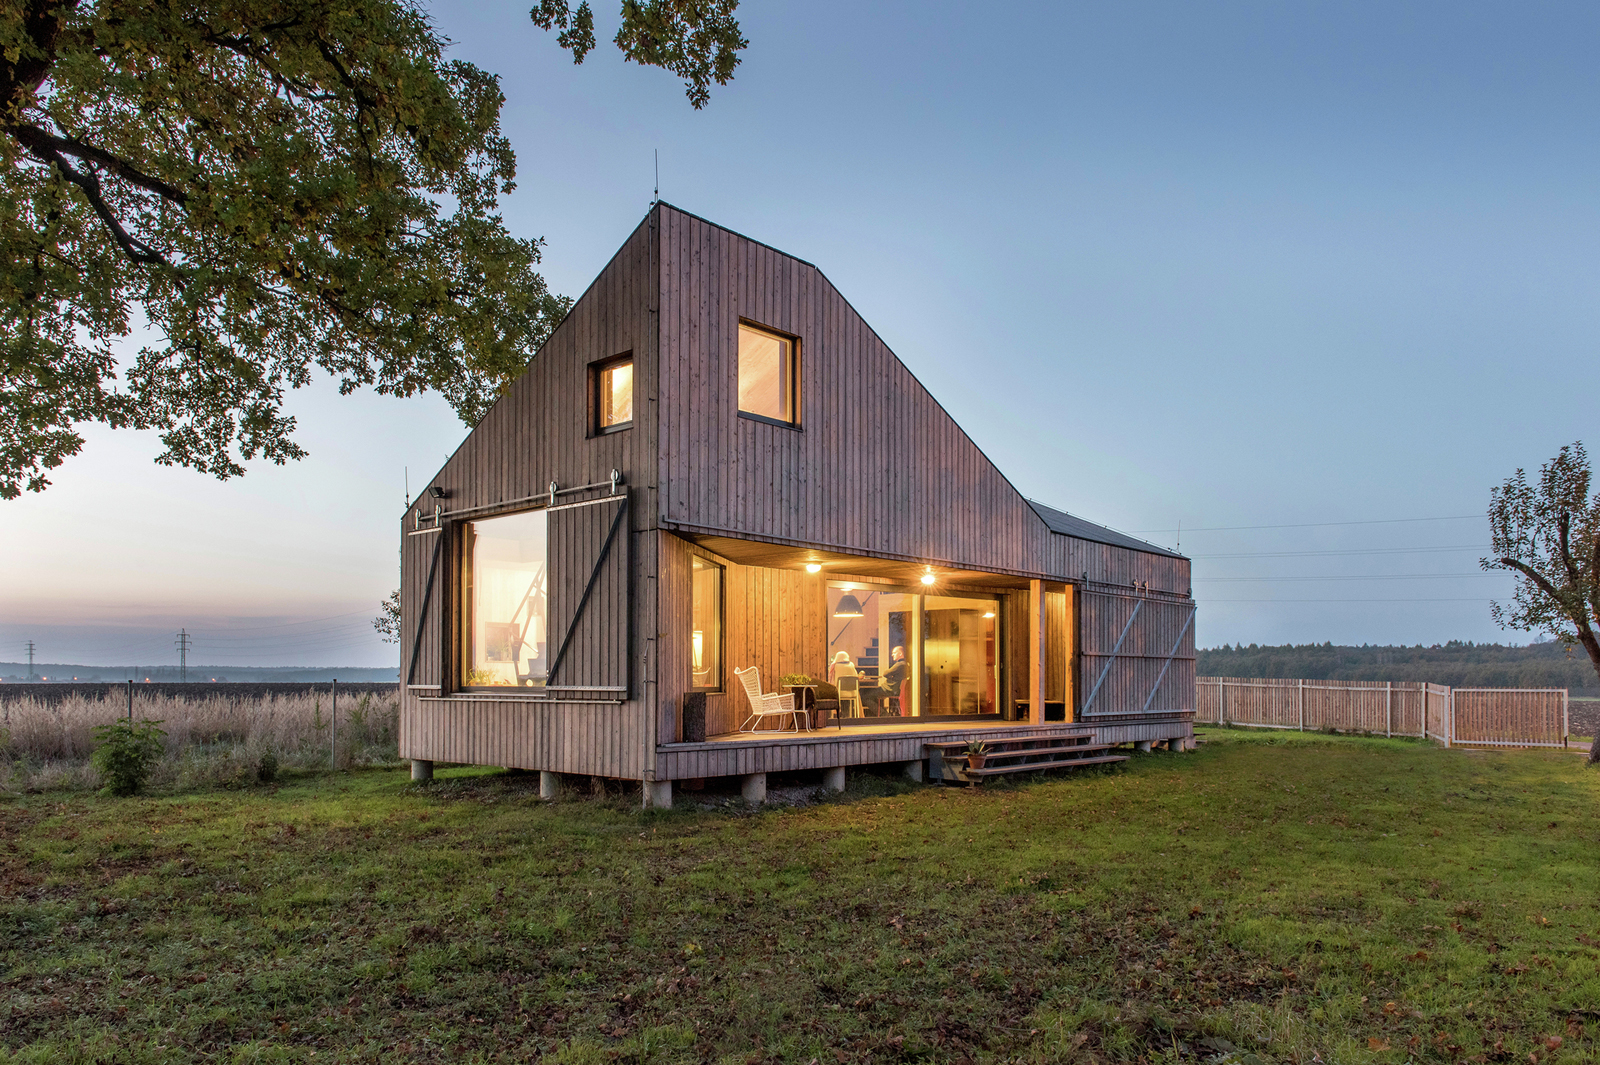 Related posts restored historical stone building transformed into modern country house